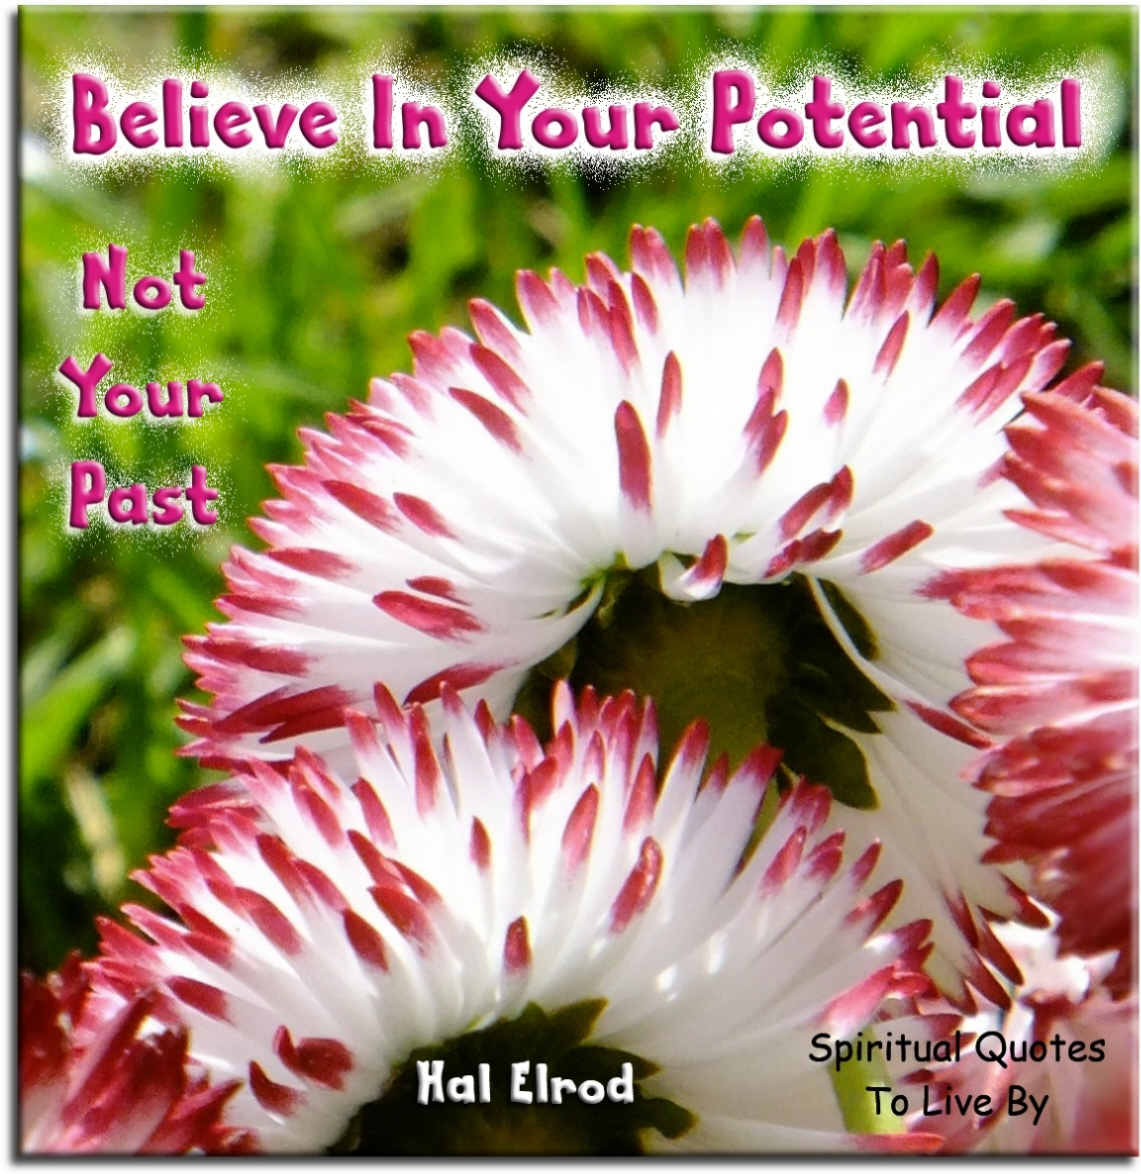 Hal Elrod quote: Believe in your potential...  not your past. Spiritual Quotes To Live By